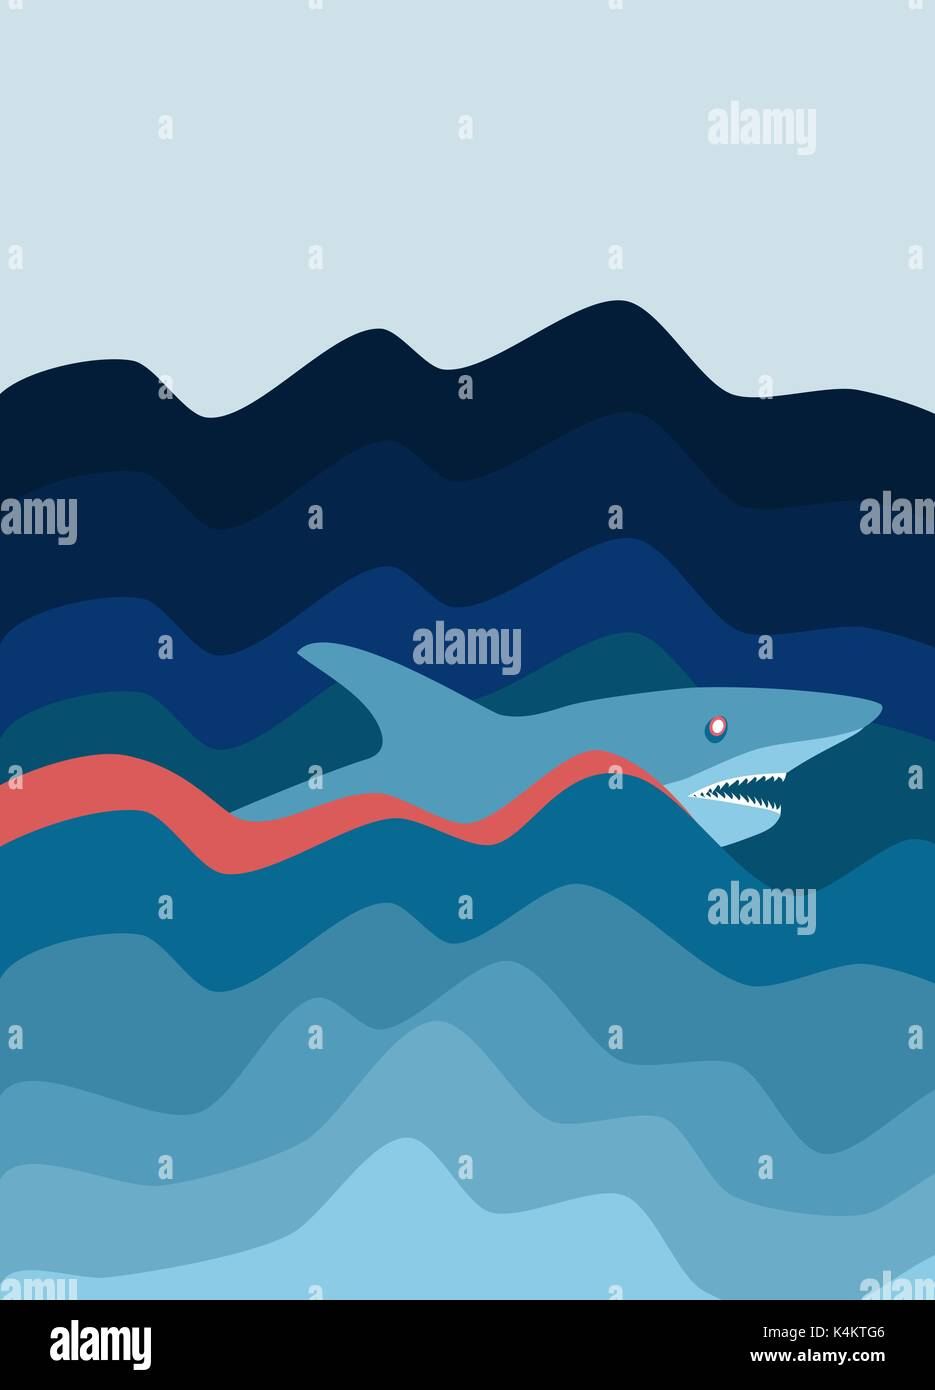 Shark attack. Abstract background. - Stock Vector